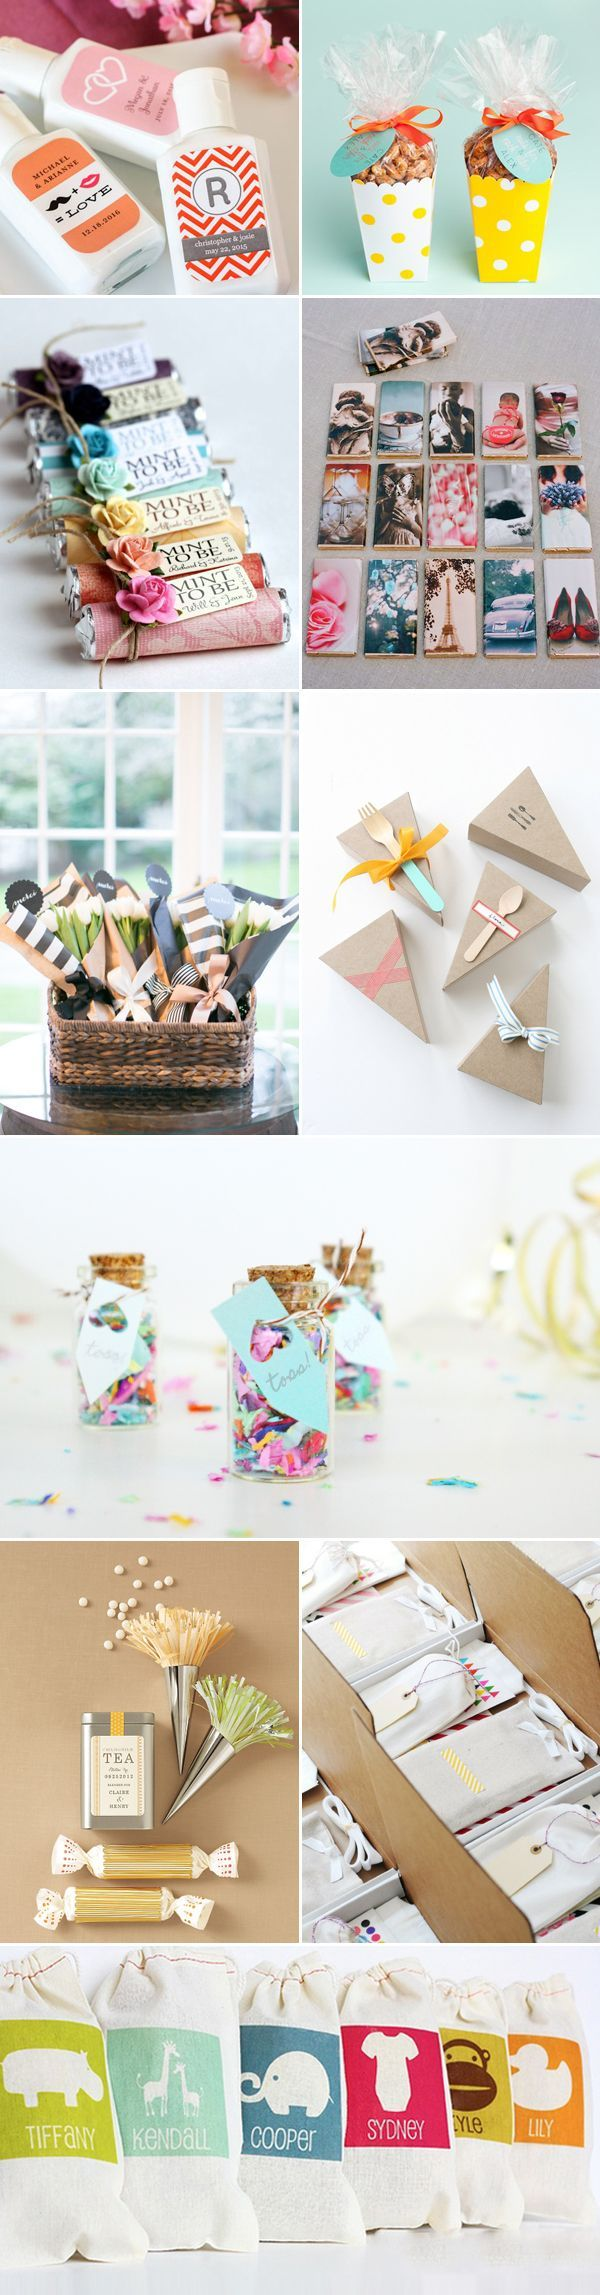 27 best FAVORS images on Pinterest | Marriage, Gifts and Honey ...